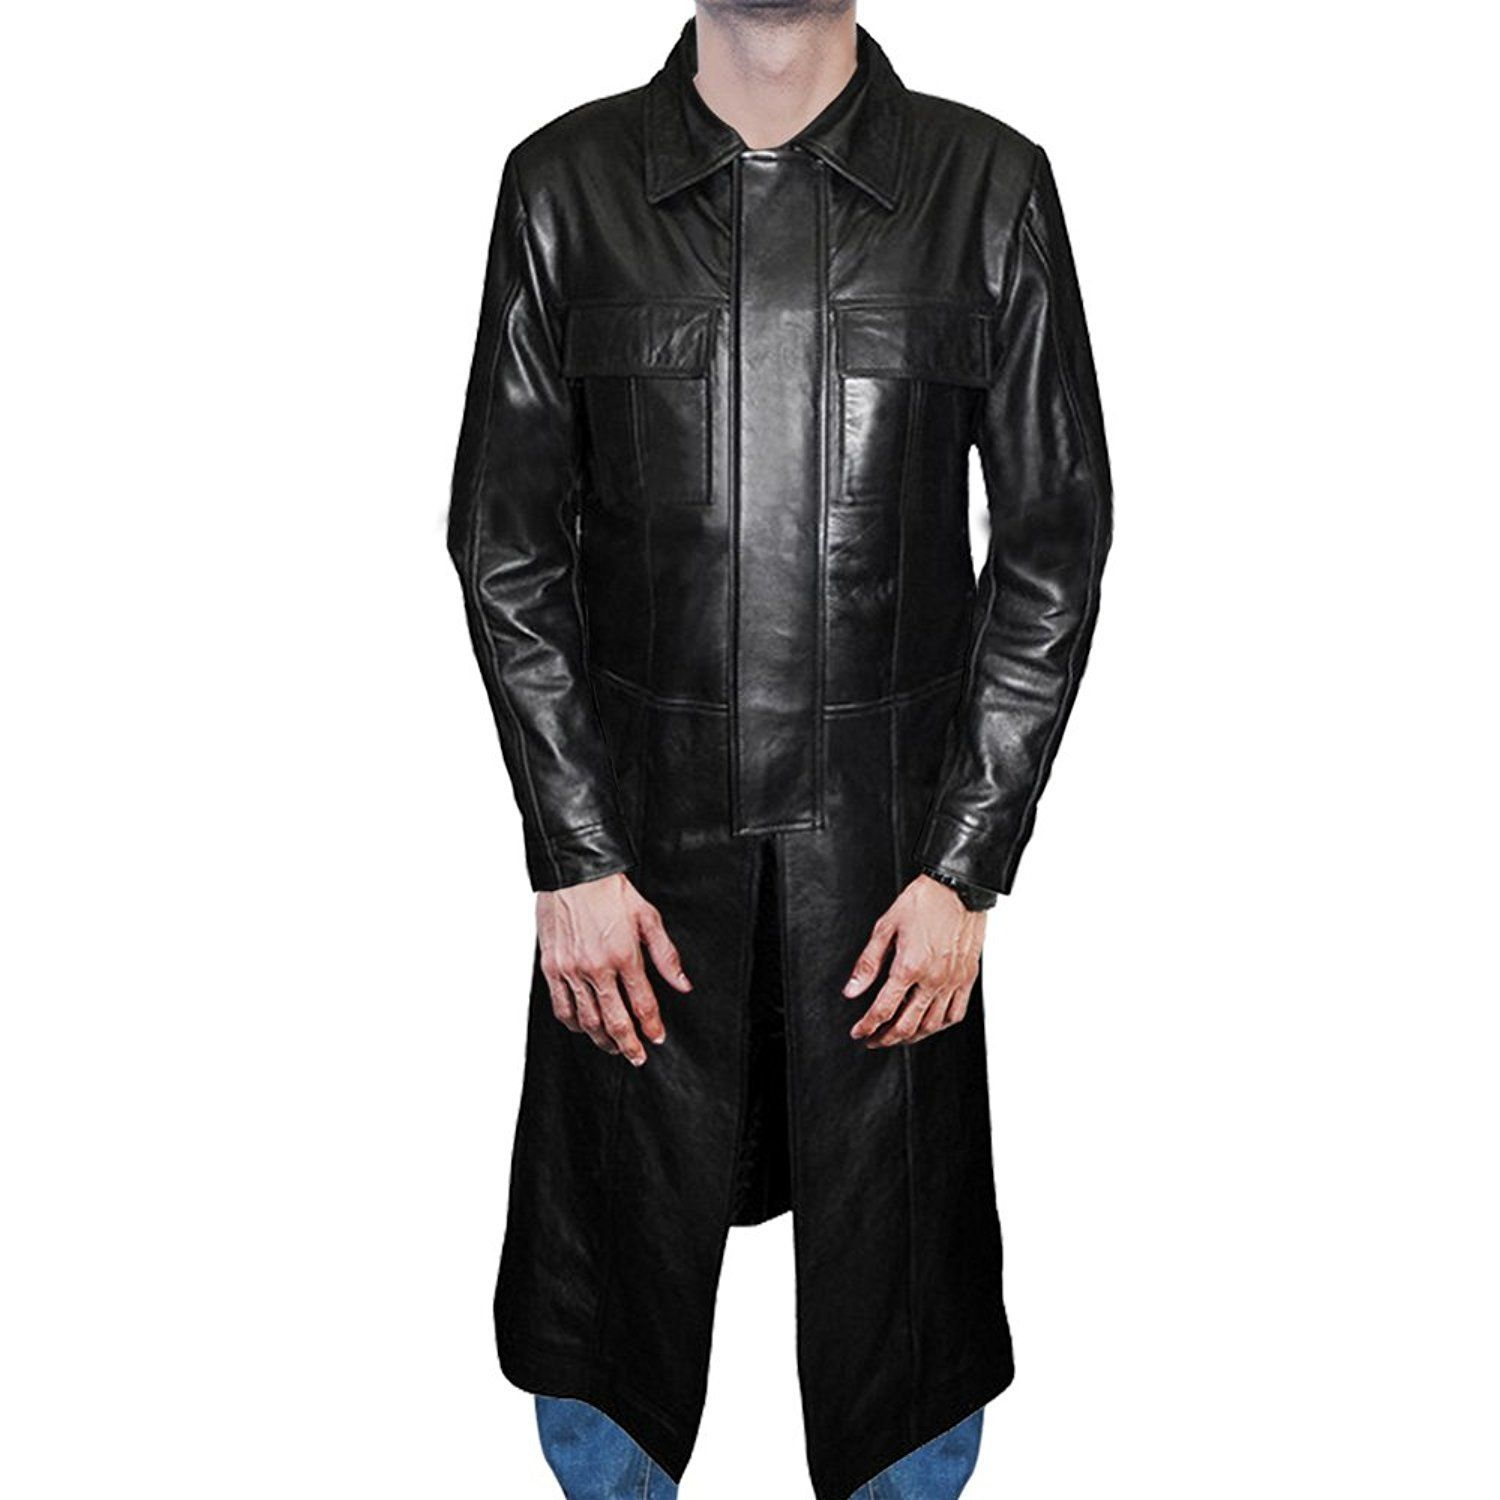 Stylish And Newly Designed Trench Leather Coat Inspired From The Movie The Punisher Carry By Thomas Jane As Frank Jackets Men Fashion Leather Coat Thomas Jane [ 1500 x 1500 Pixel ]